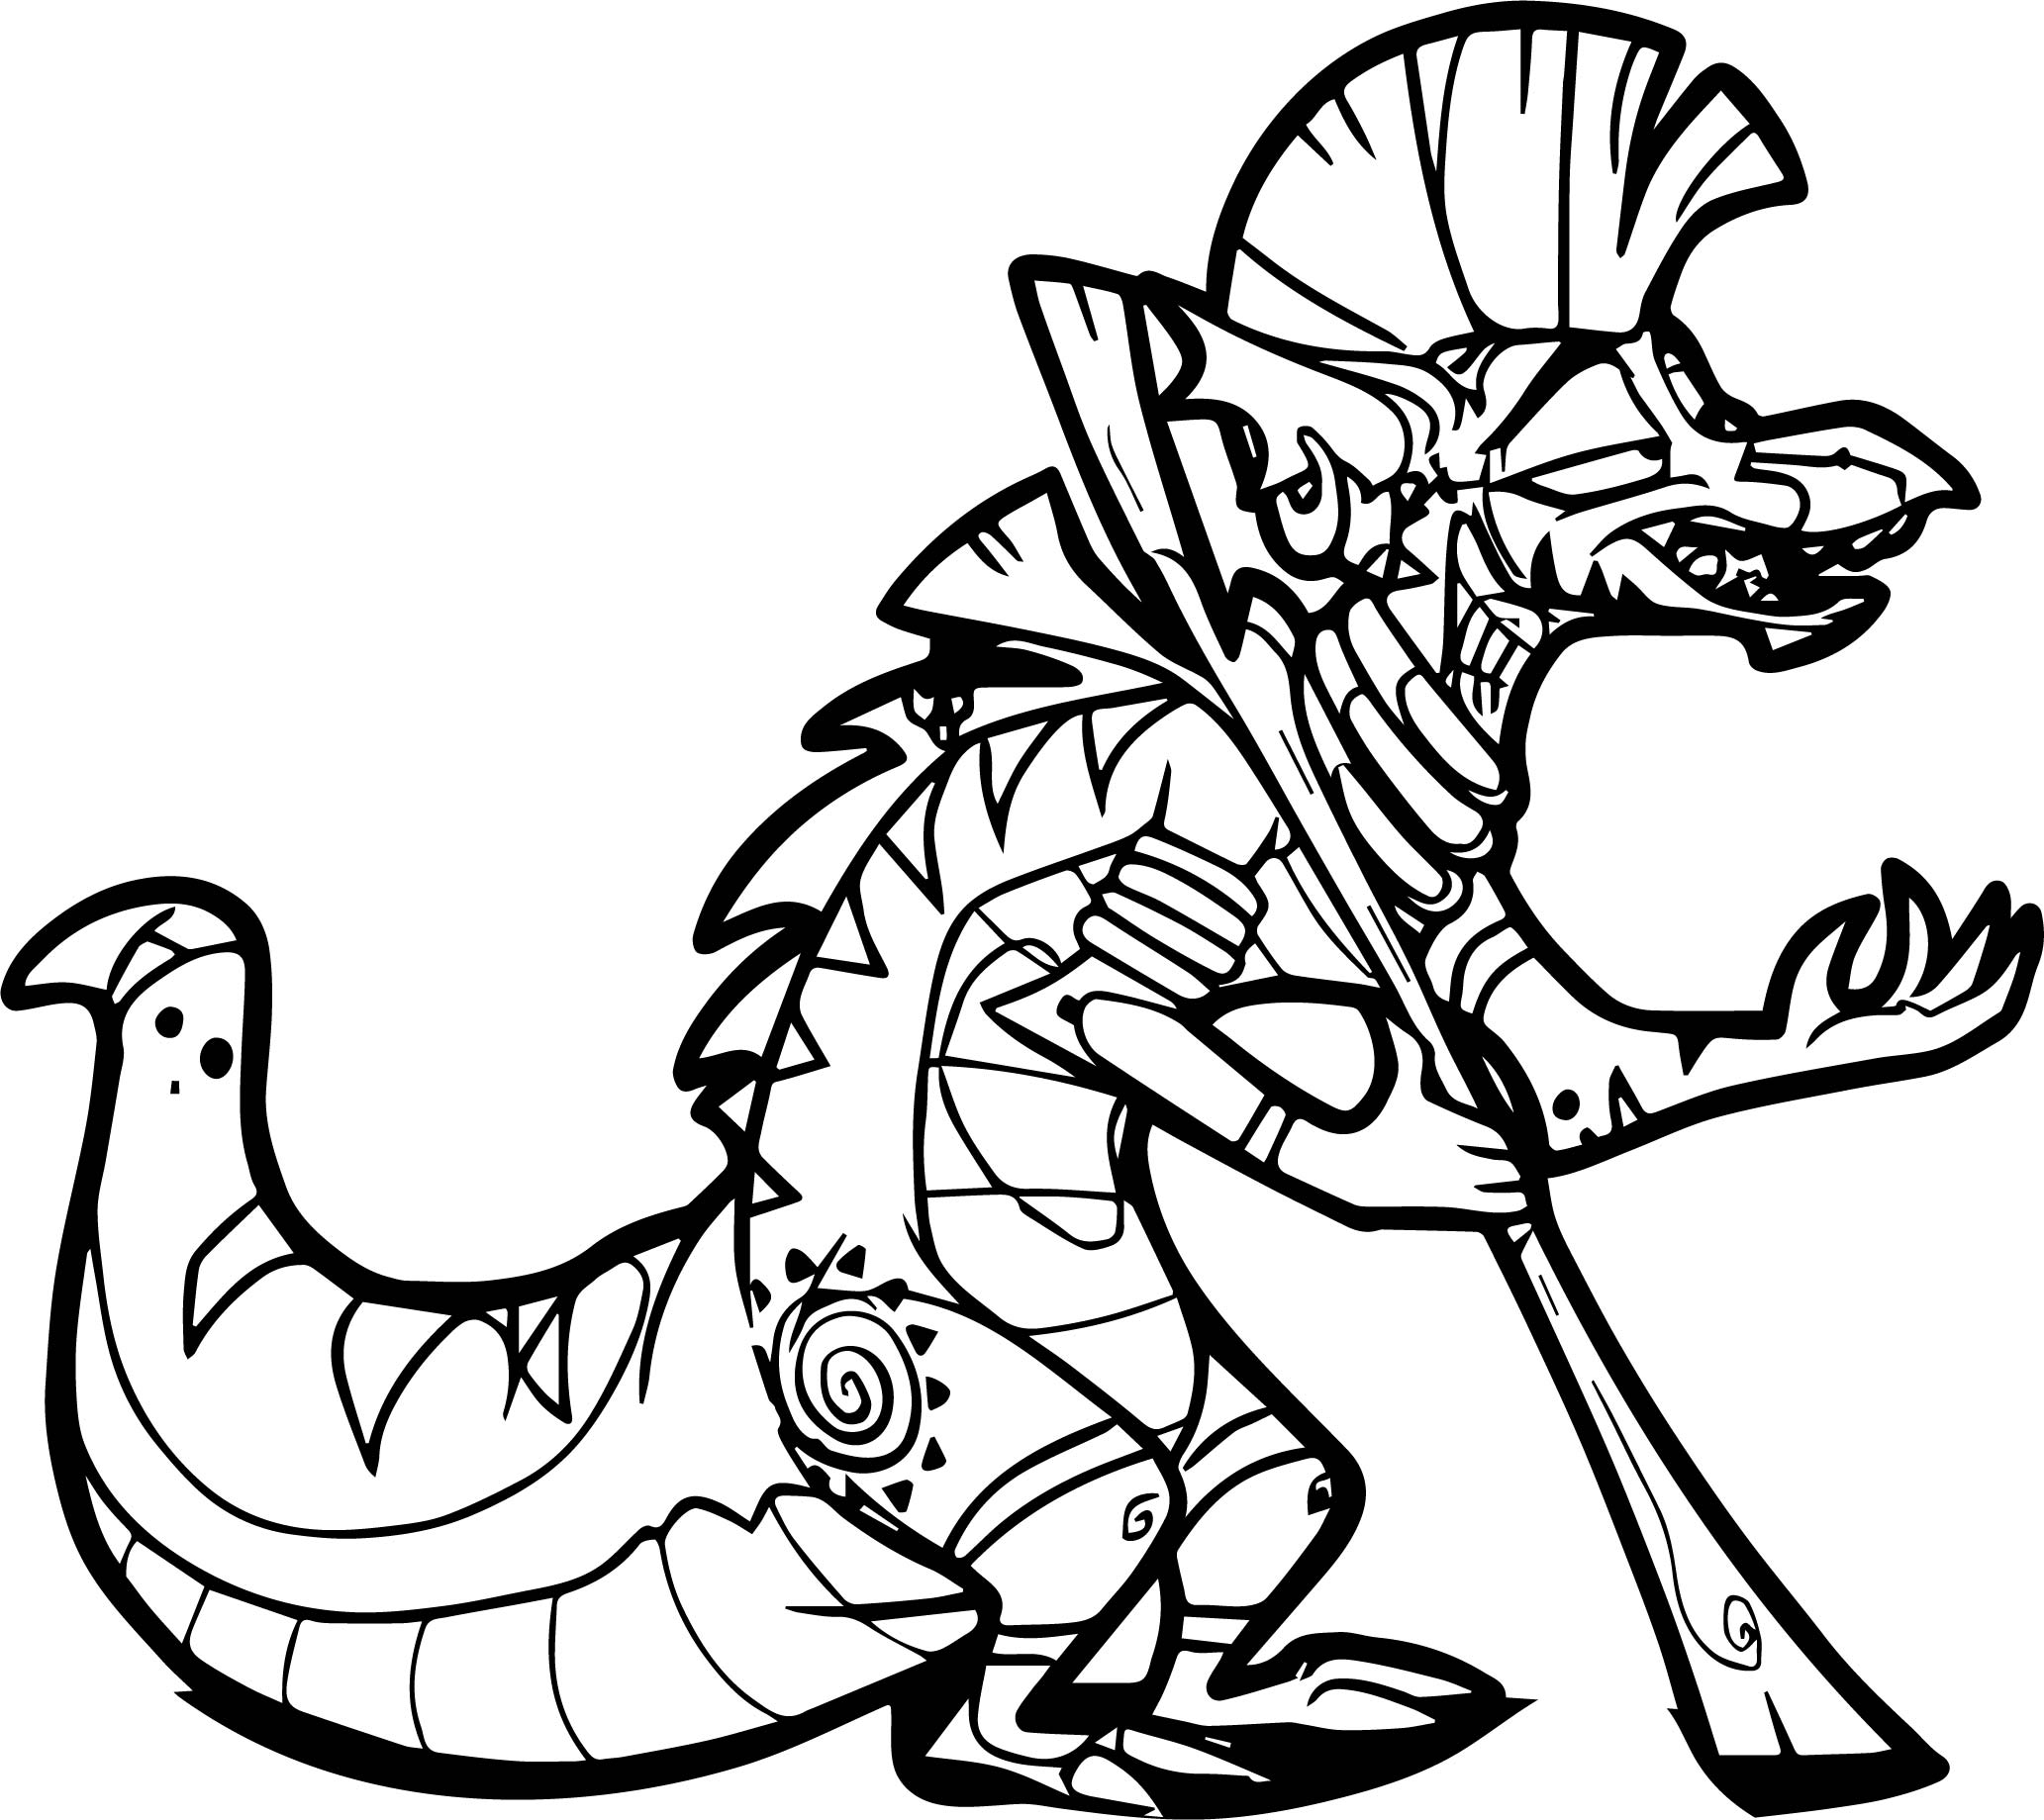 My Little Pony Zecora Coloring Pages : Zecora dragonification coloring page wecoloringpage